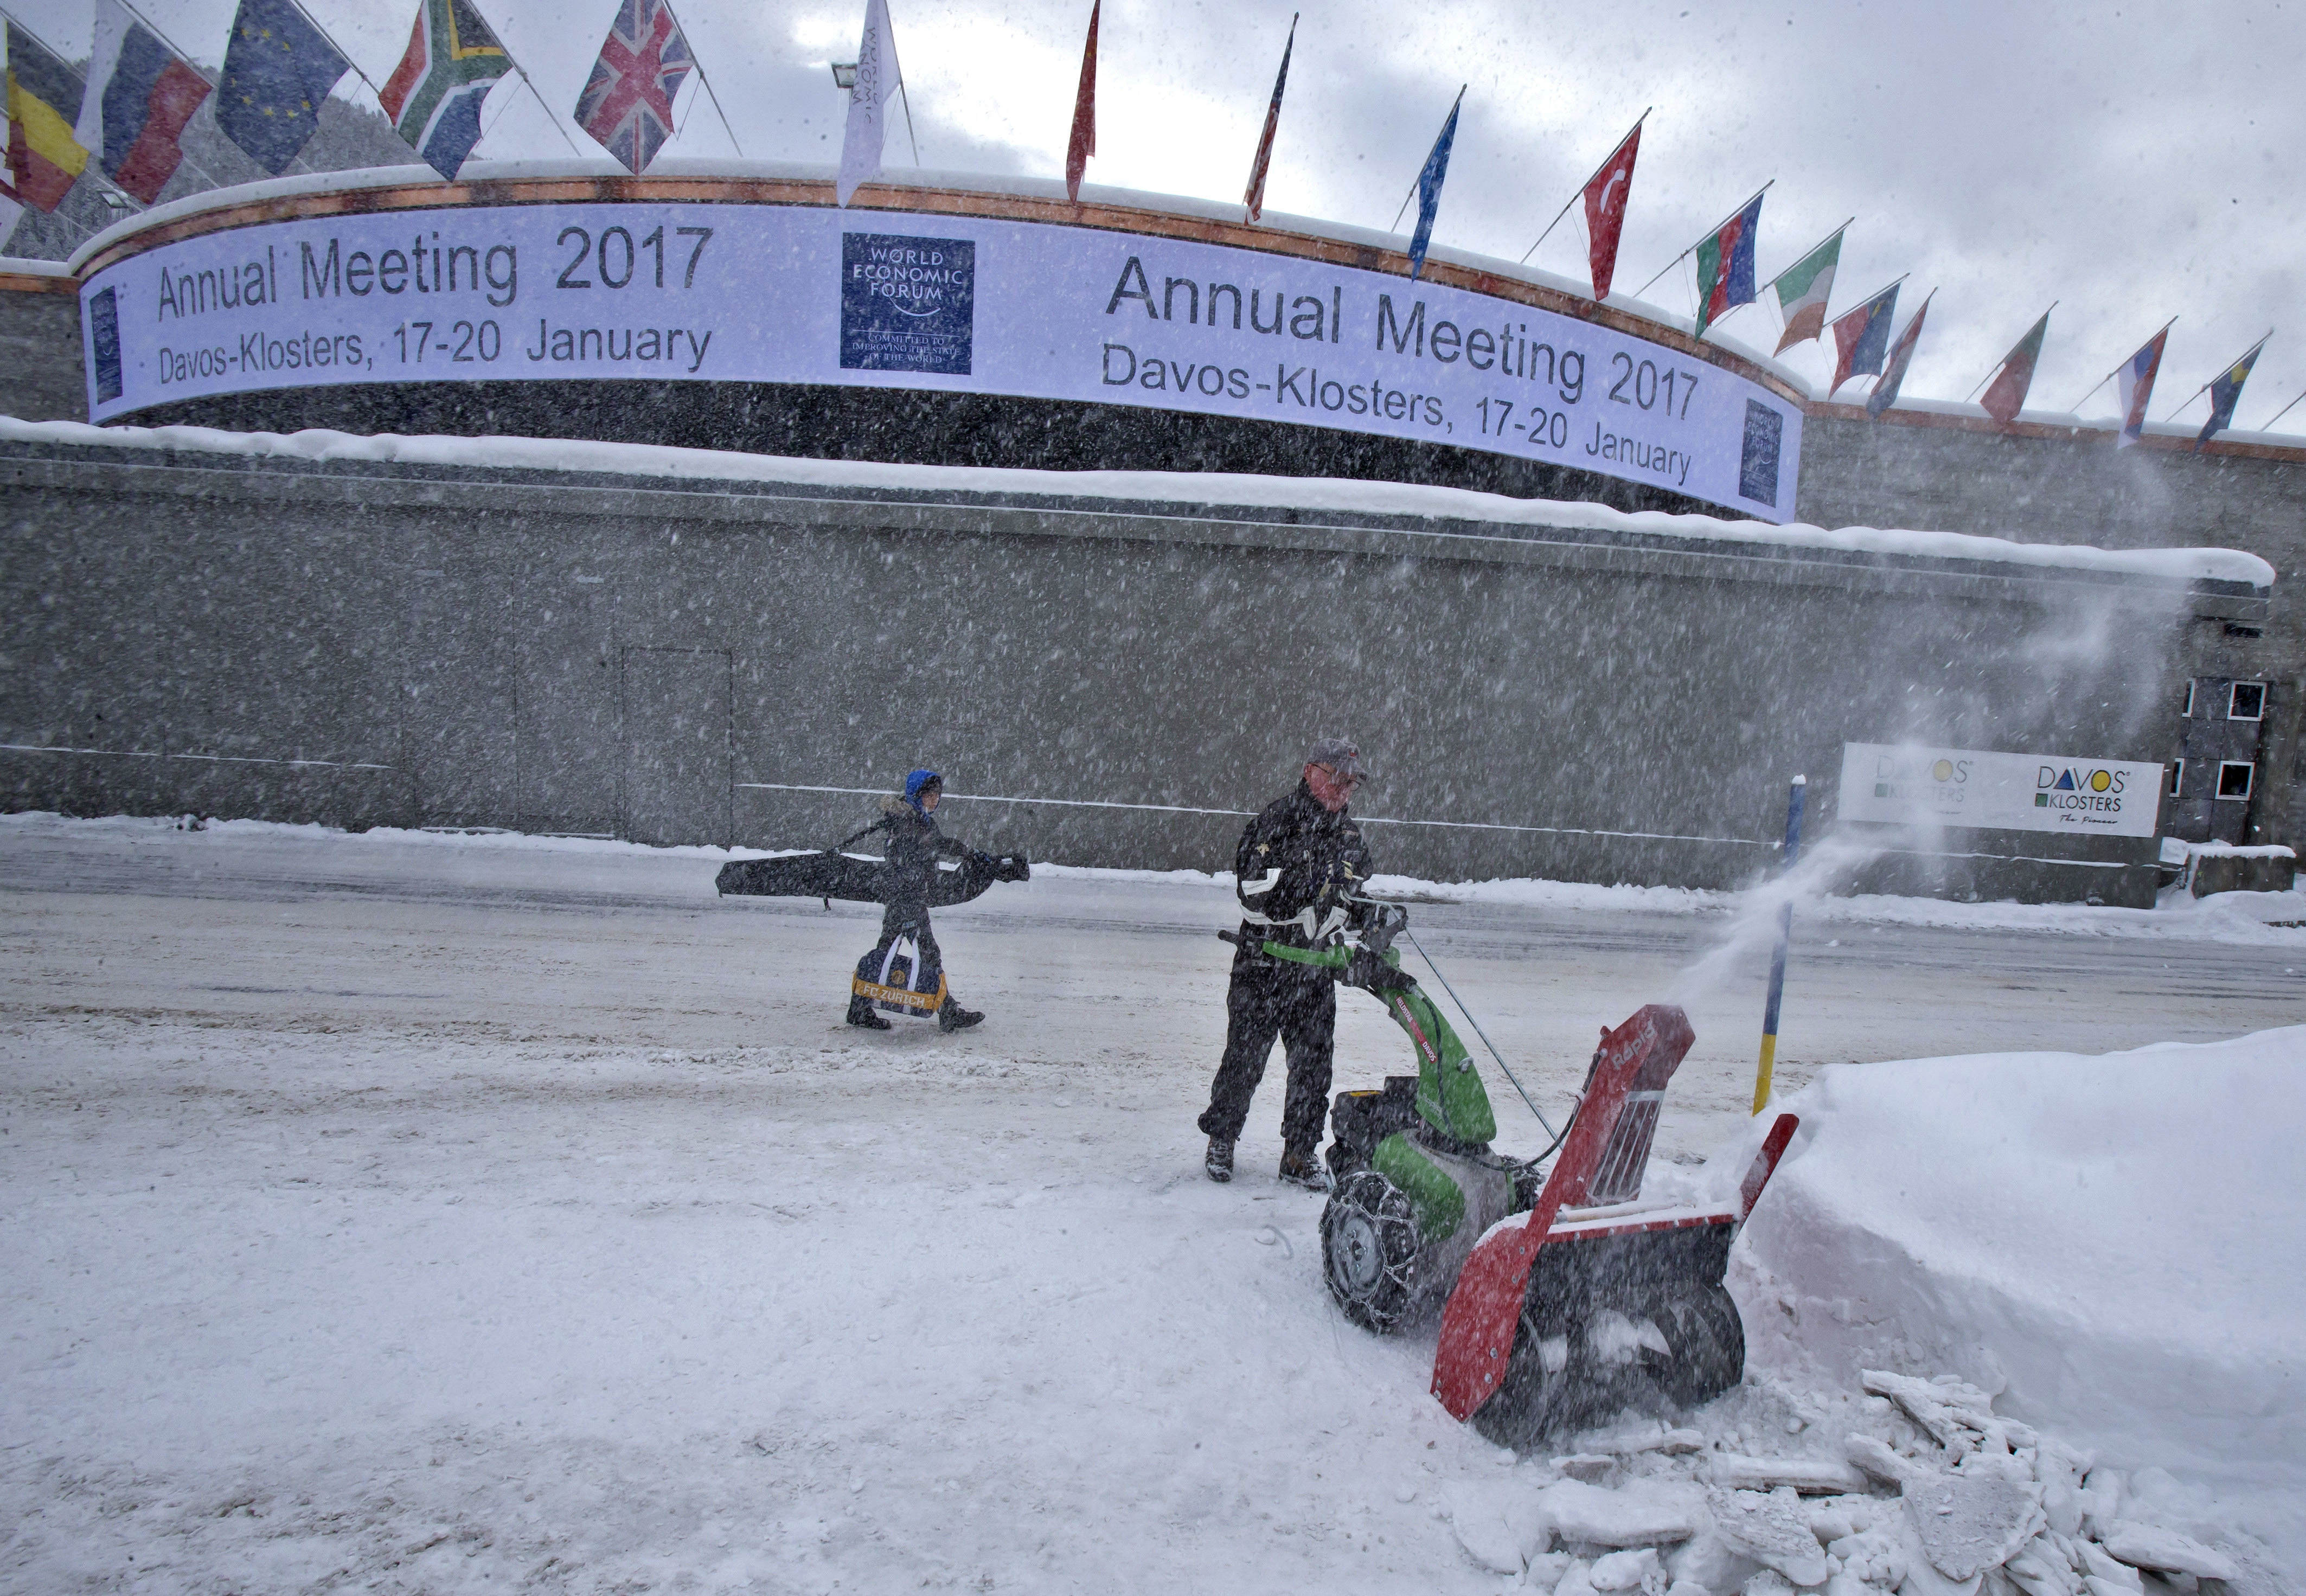 A municipality worker uses a snow blower to clear the area in front of the congress center where the annual meeting, World Economic Forum, will take place in Davos, Switzerland on Jan. 15, 2017. (AP Photo/Michel Euler)